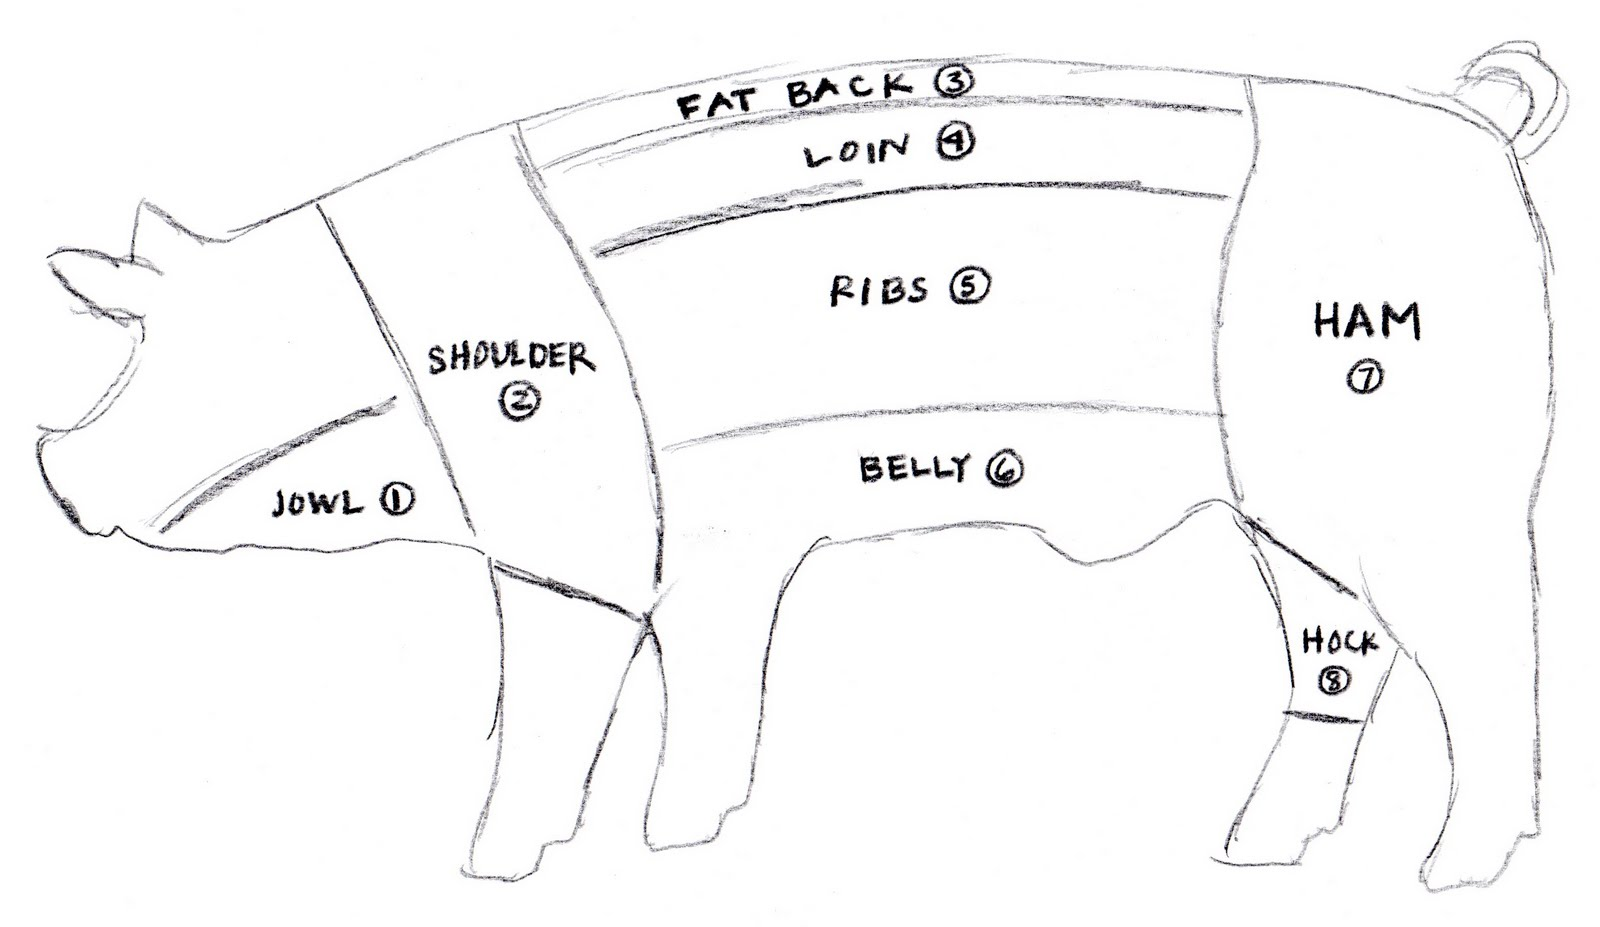 Diary of a Locavore: The Local Food Report: on pig